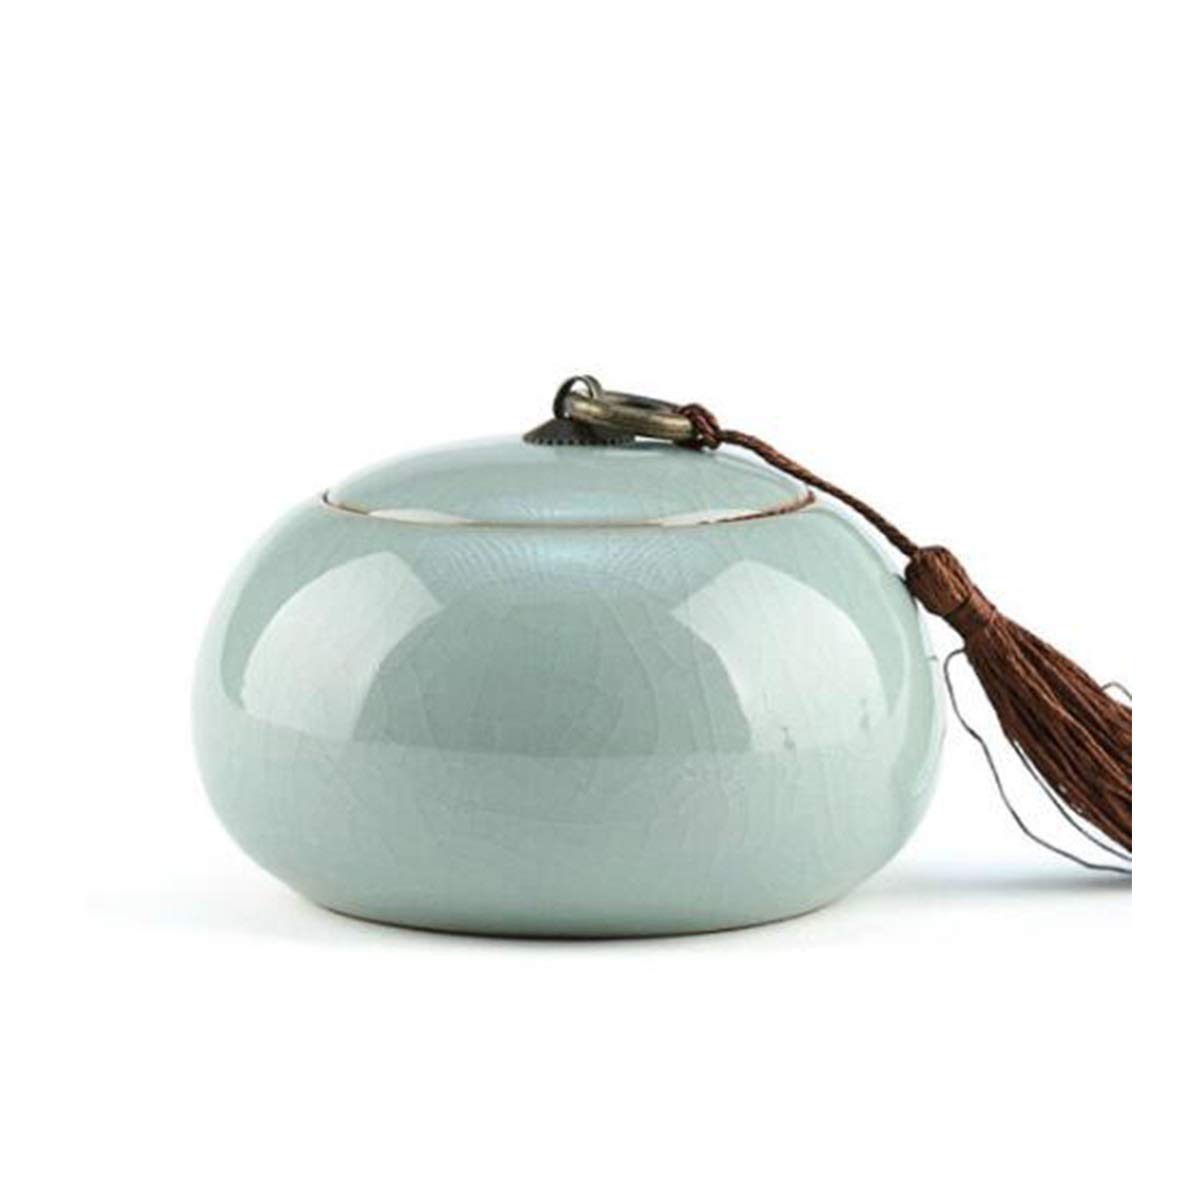 B 10.57.5cm B 10.57.5cm Hengtongtongxun Pet Urn,Cremation Urns for Pets,Functional Urn,Ceramic Sealed,Moisture Proof,Keepsake Box for Dogs and Cats,10.5  7.5cm Soul Place (color   B, Size   10.5  7.5cm)